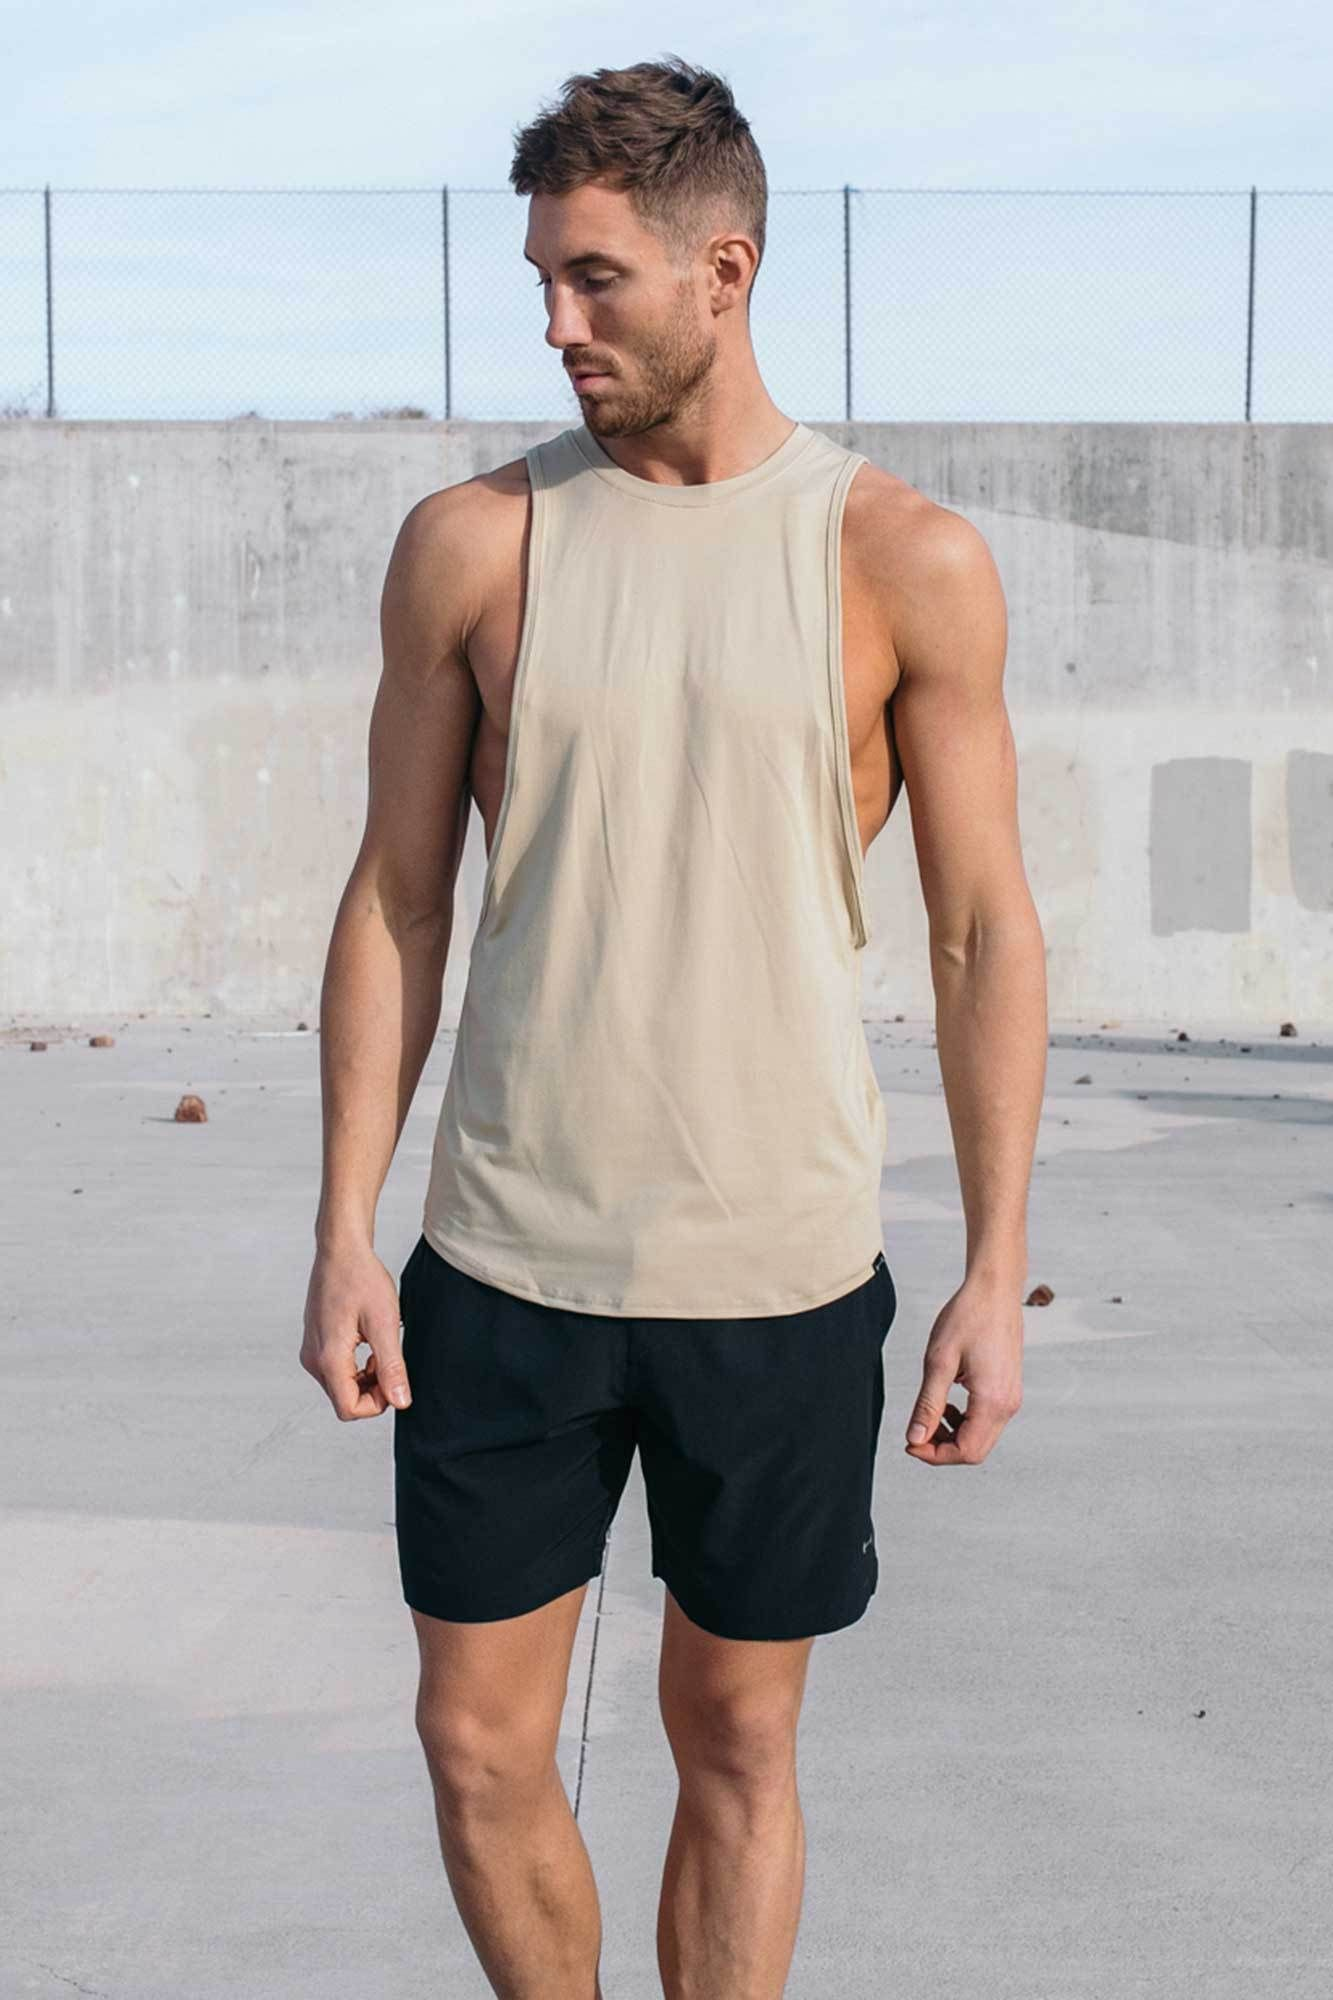 6a20d8b30fefdf WHY WE MADE THIS The Vented Drop Tank pushes the fit of the standard tank  top to the next level. With wide and low arm openings